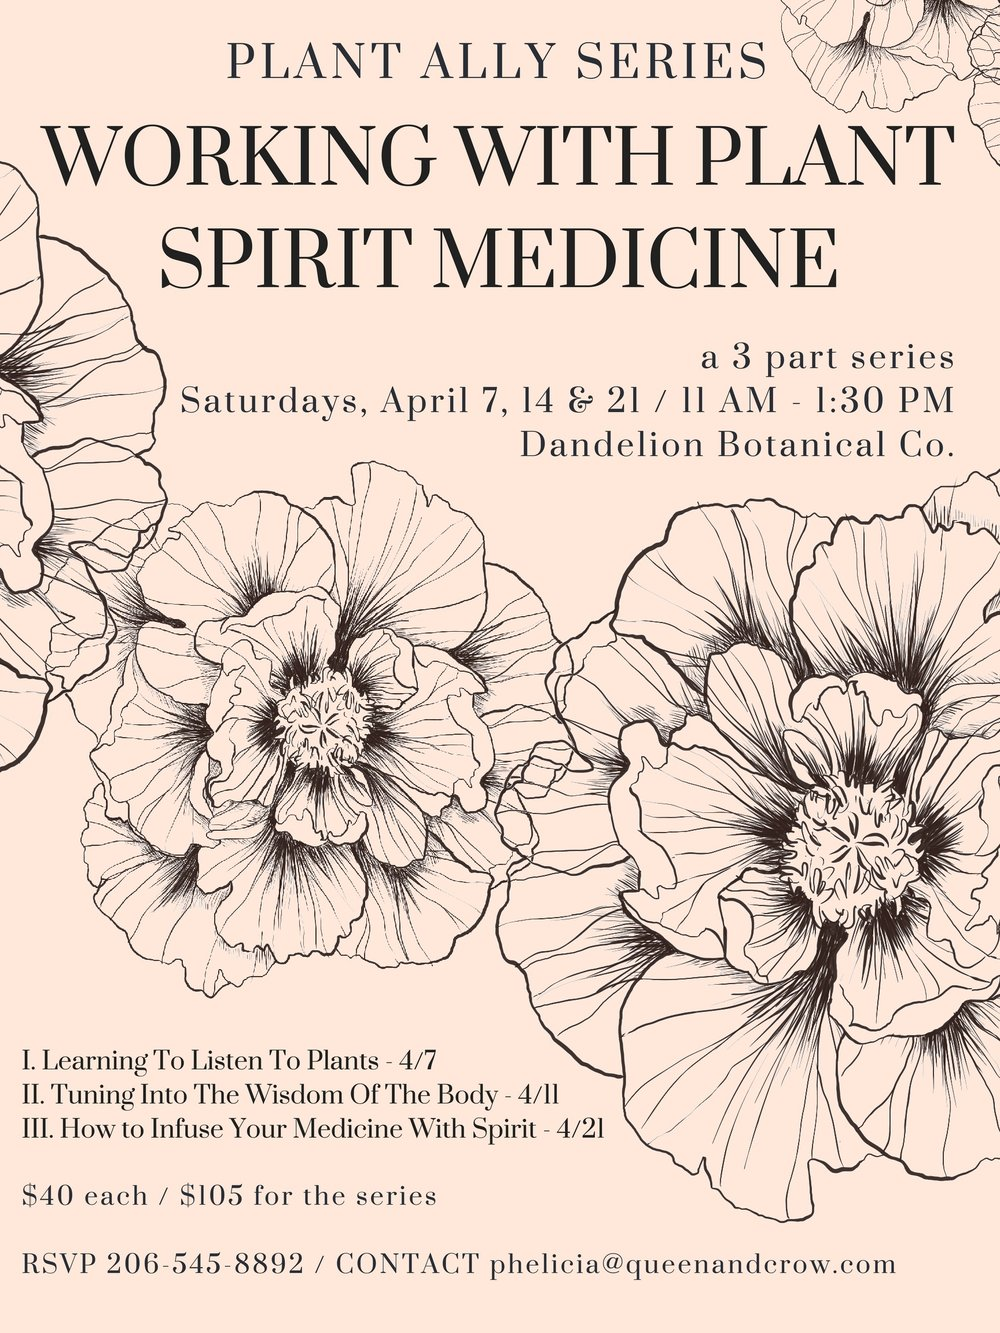 Plant Ally Series: Working with Plant Spirit Medicine @  Dandelion Botanical Company  \\$40 a workshop or $105 for the whole series     A 3-part series focused on cultivating a relationship with plants.        Learning To Listen To Plants , Saturday 4.7.18 , 11AM-1:30PM      In our first class we will talk about the many ways one can begin cultivating a relationship and an awareness of plant spirits.  We will meet a few plants as teas, tinctures and flower essences, and talk about working with the wisdom present in each form. In closing, we will engage a plant ally in dialogue through meditation with a flower essence, and create medicine bundles to support intentional dreaming.      Tuning Into The Wisdom Of The Body, Saturday 4.11.18 , 11AM-1:30PM      Our second class will focus on tuning into the wisdom of the body as tool for deepening our awareness of plant allies. We will practice grounding and centering in our bodies, and work with an essence or a tea to guide us in journaling from the body.  Our discussion will center on floral bathing, the wisdom of the elements, and cultivating embodied intuition by working with plants topically. Folks will leave with recipes for floral bathing and a flower essence.      Tincture Making & How to Infuse Your Medicine With Spirit, Saturday 4.21.18 , 11AM-1:30PM      In our final class we will engage in the ritual of medicine making by learning to make alcohol based tinctures in the folk medicine style. We will learns ways to invoke the spirits of the plants, invite the wisdom of lands and ancestors and make intentional medicine. Our discussion will include working with solar and lunar phases, making environmental essences, and creating community rituals of healing.   // RSVP though  Dandelion Botanical Company  or by calling 206-545-8892